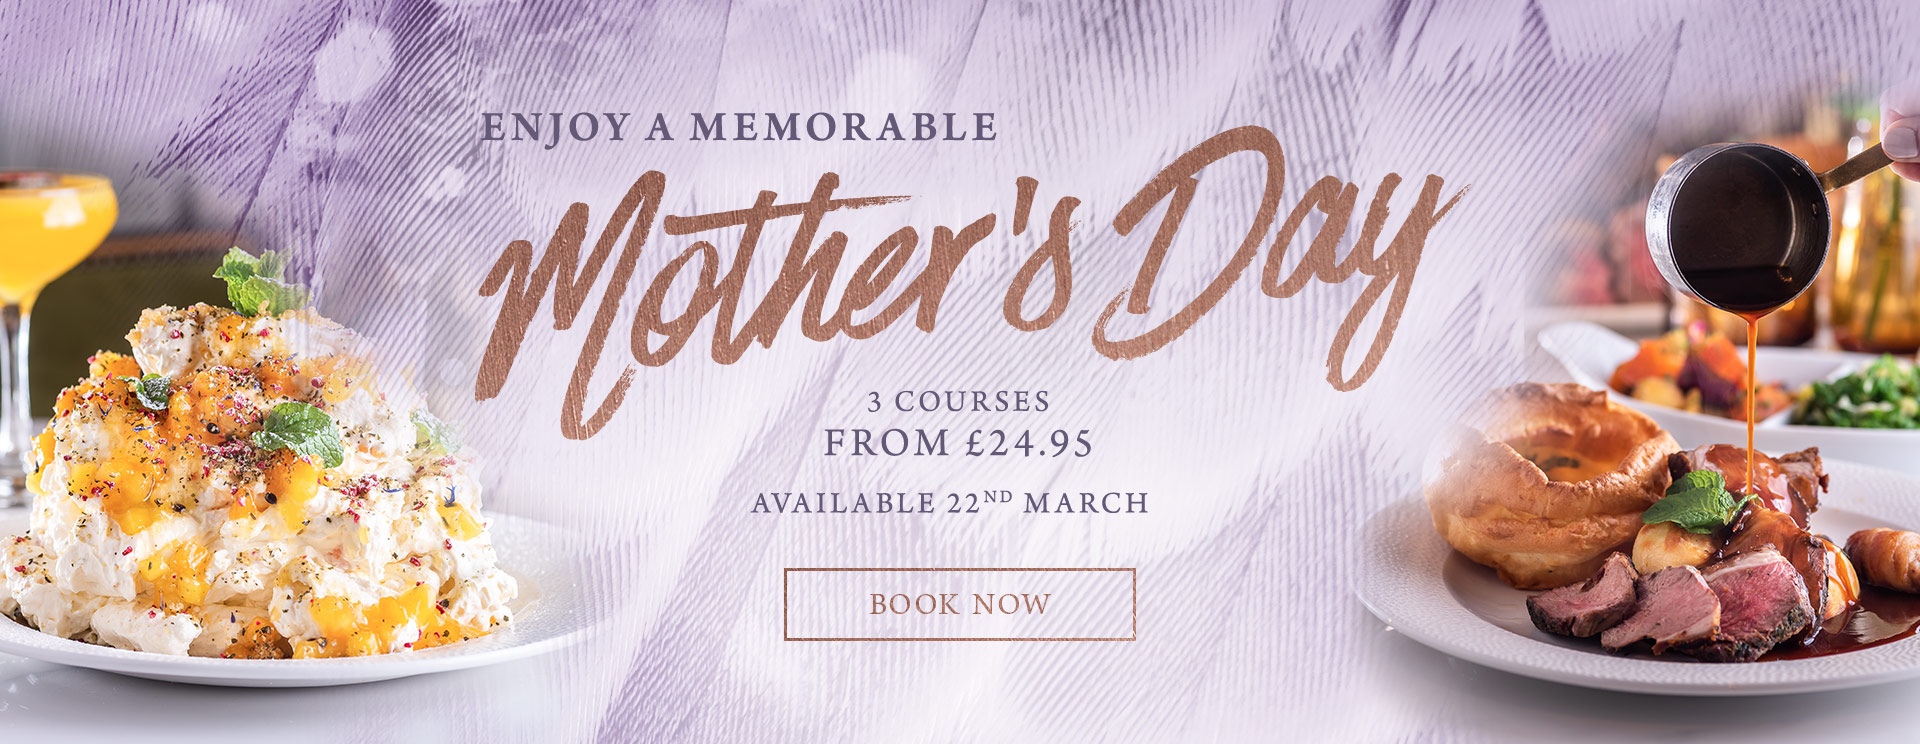 Mother's Day 2019 at The Cowper Arms